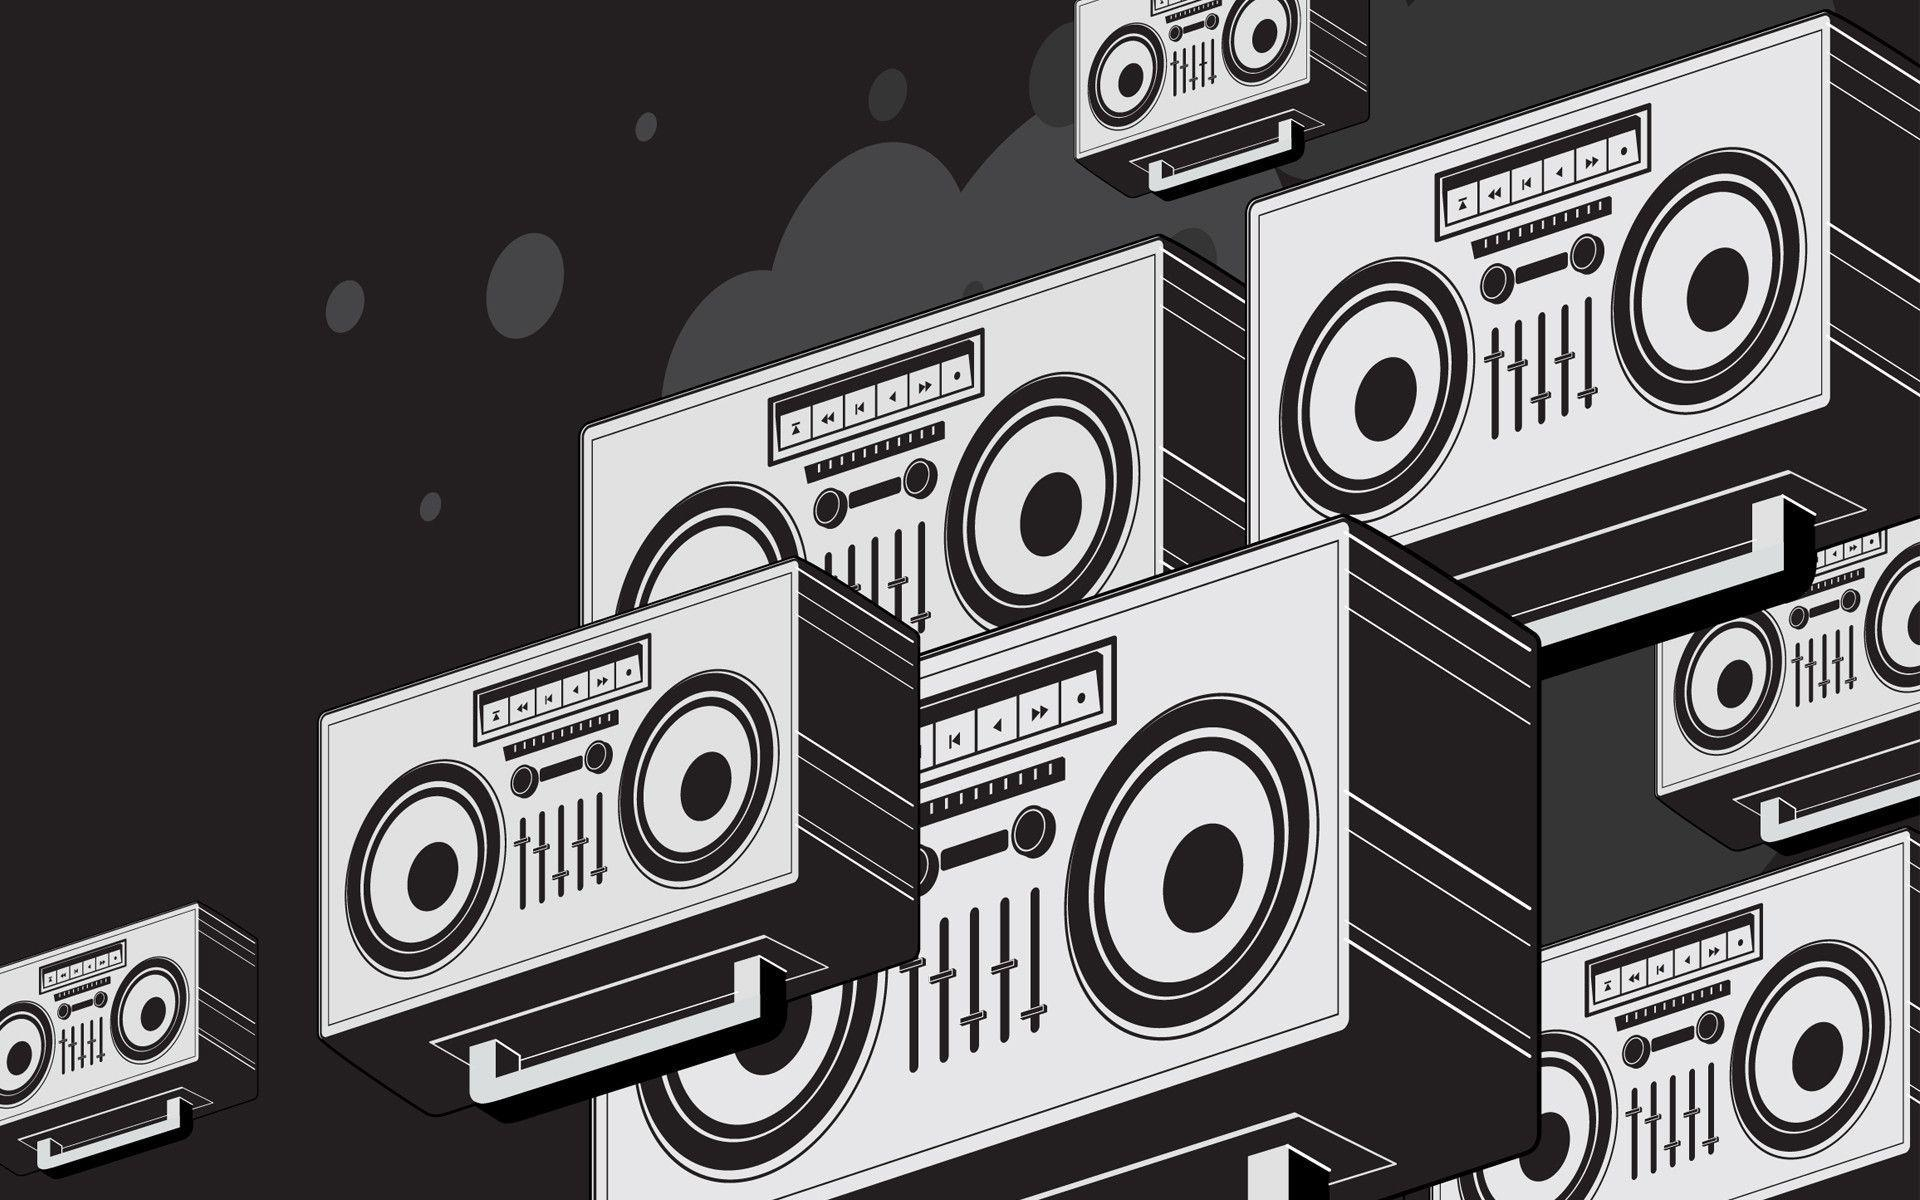 abstract boombox wallpaper 68657